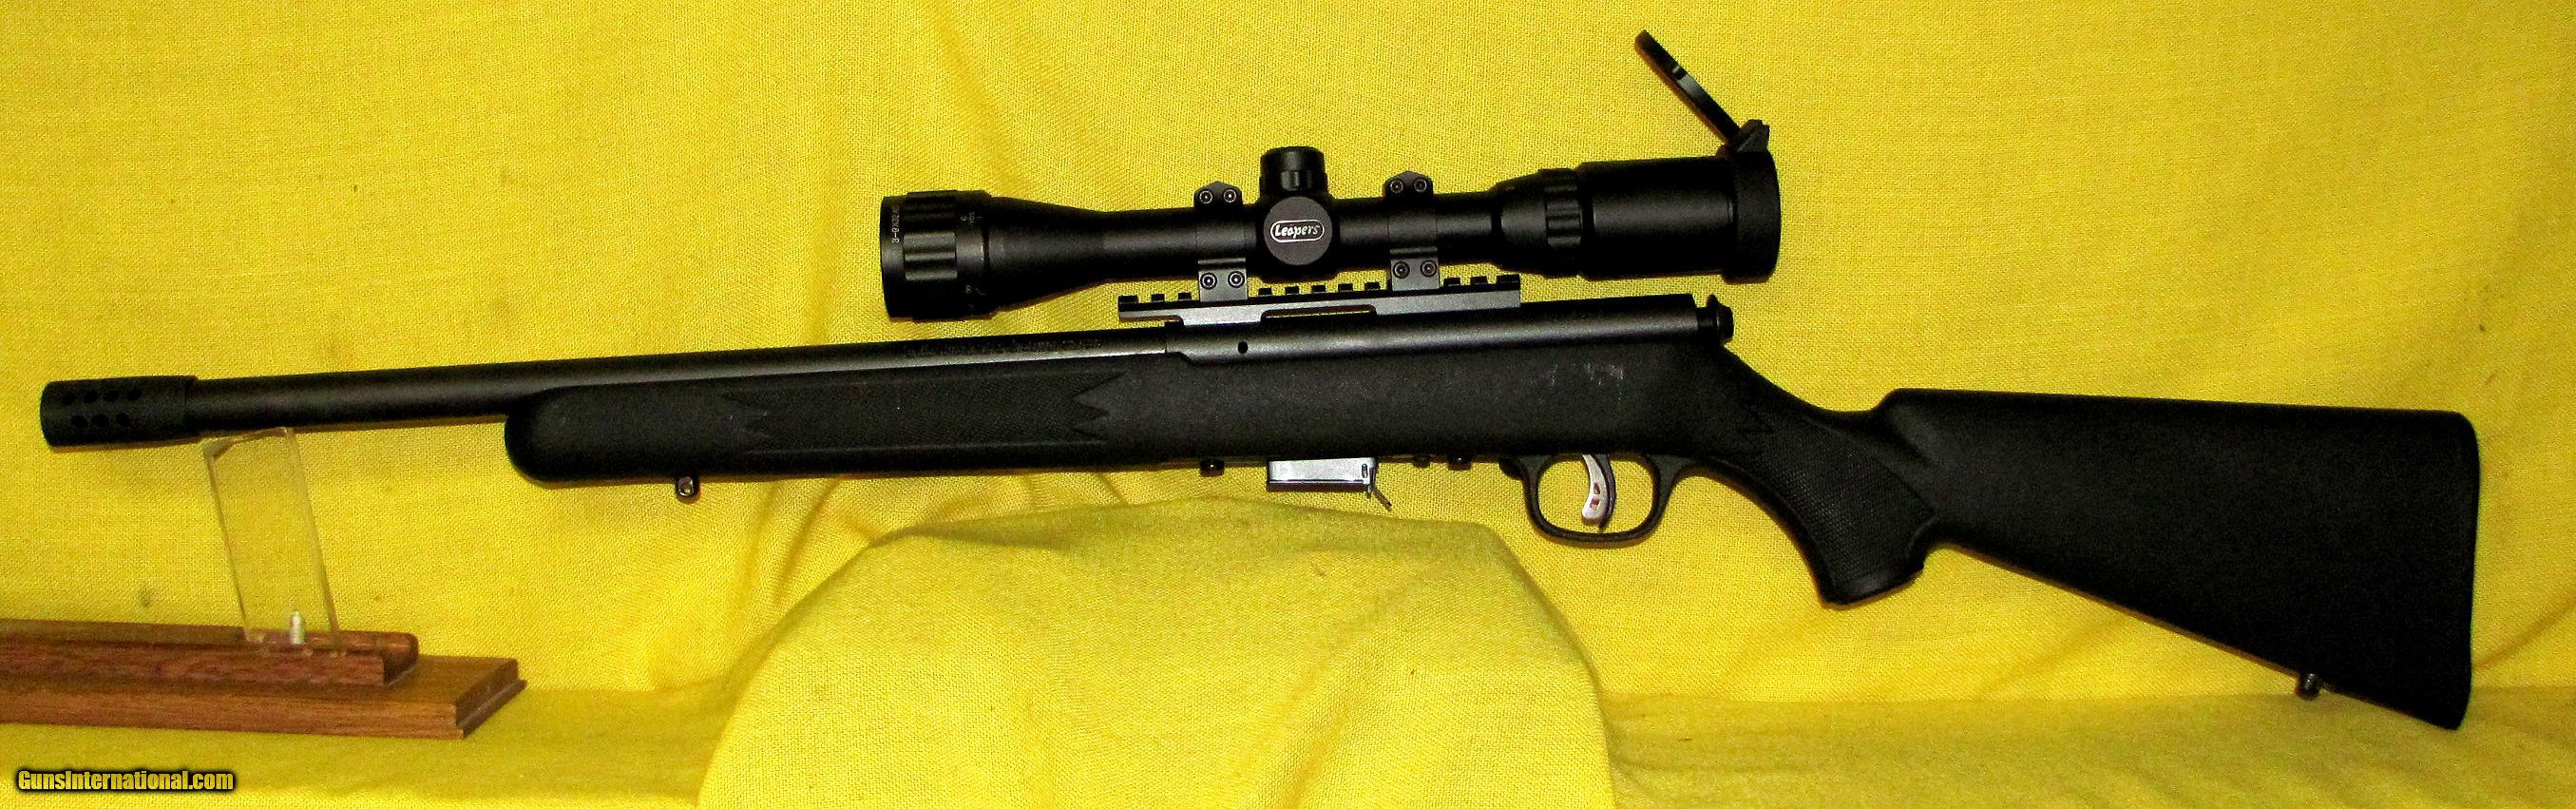 Savage Rifles For Sale New And Used Guns For Sale Online